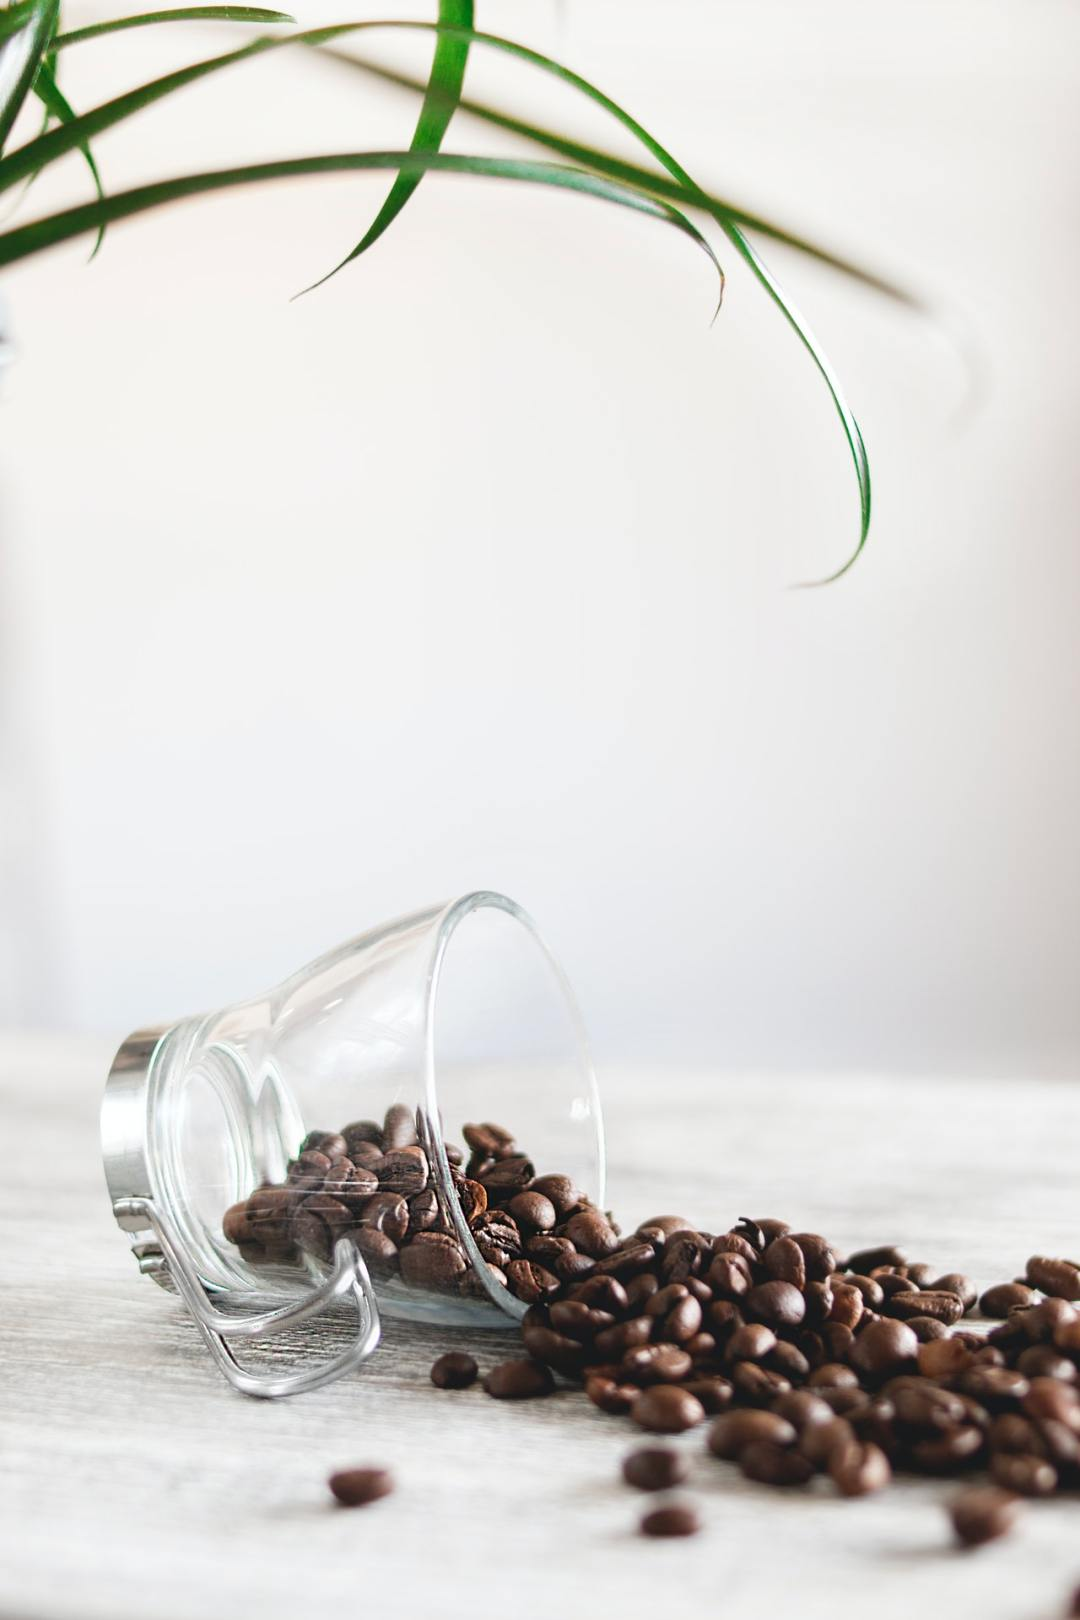 photo-of-spilled-coffee-beans-977878